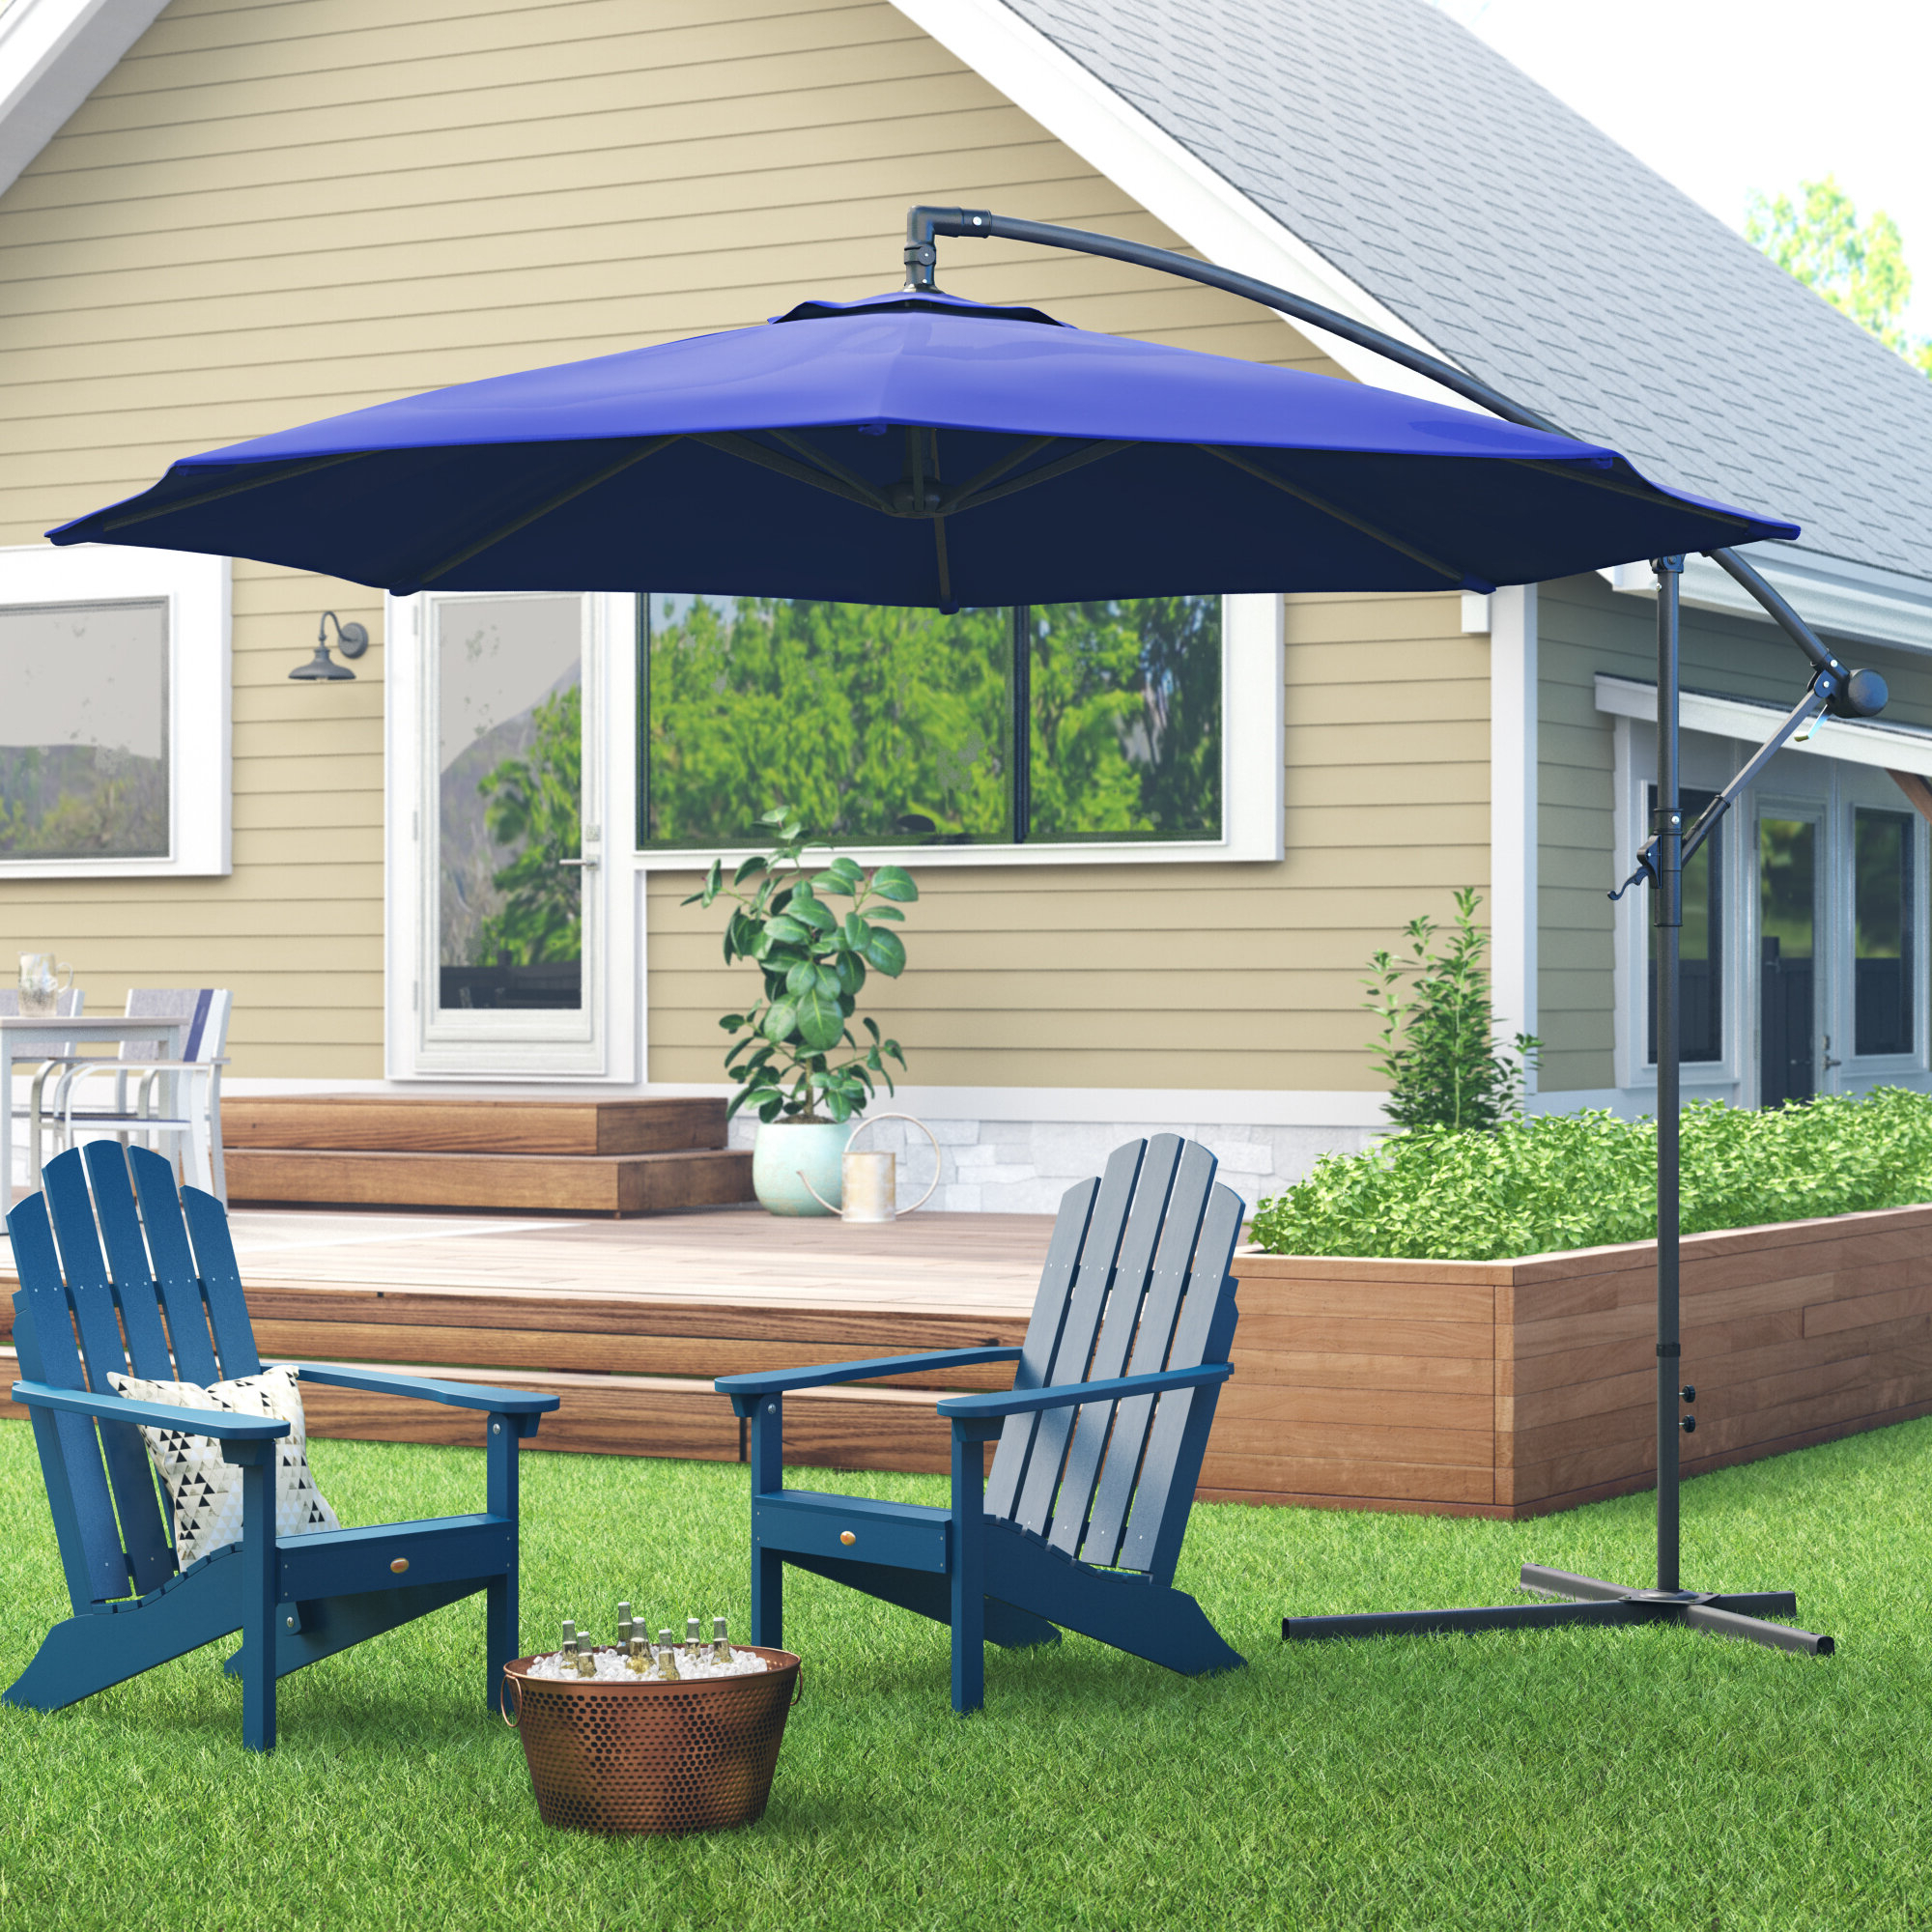 Trotman 10' Cantilever Umbrella Intended For Well Liked Vassalboro Cantilever Umbrellas (View 12 of 20)